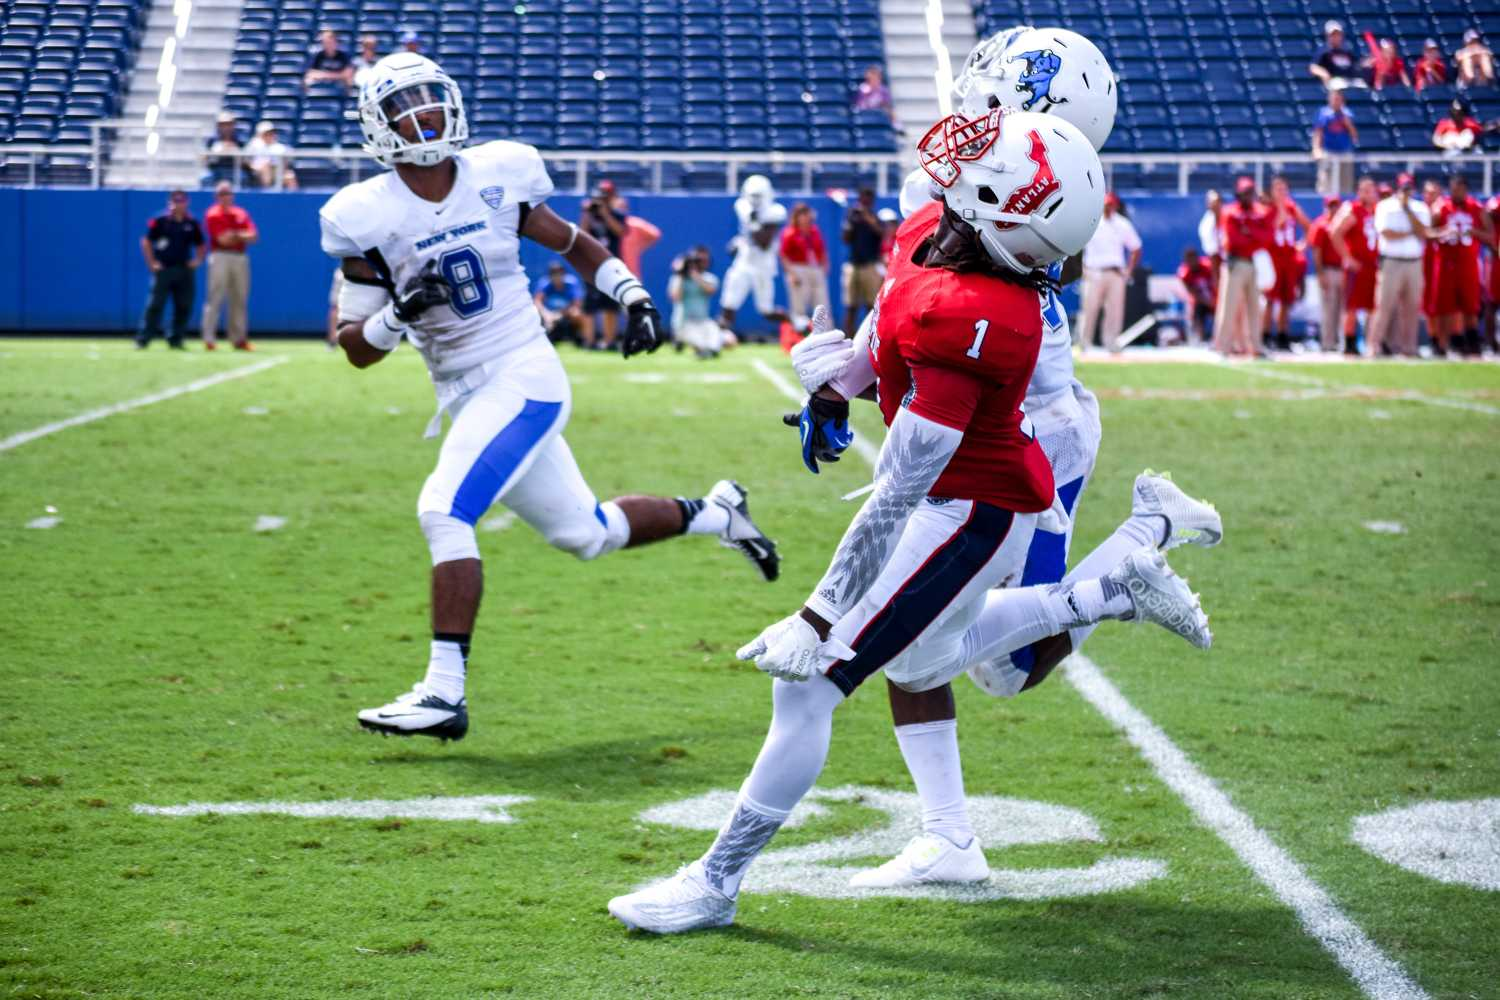 Wide receiver Henry Bussey (1) watches as an overthrown pass sails high above his head during the Owls Sept. 19 win versus Buffalo. Bussey ran for a total of 34 yards with an average of 11.3 yards per carry on the day. Alexis Hayward   Web Editor